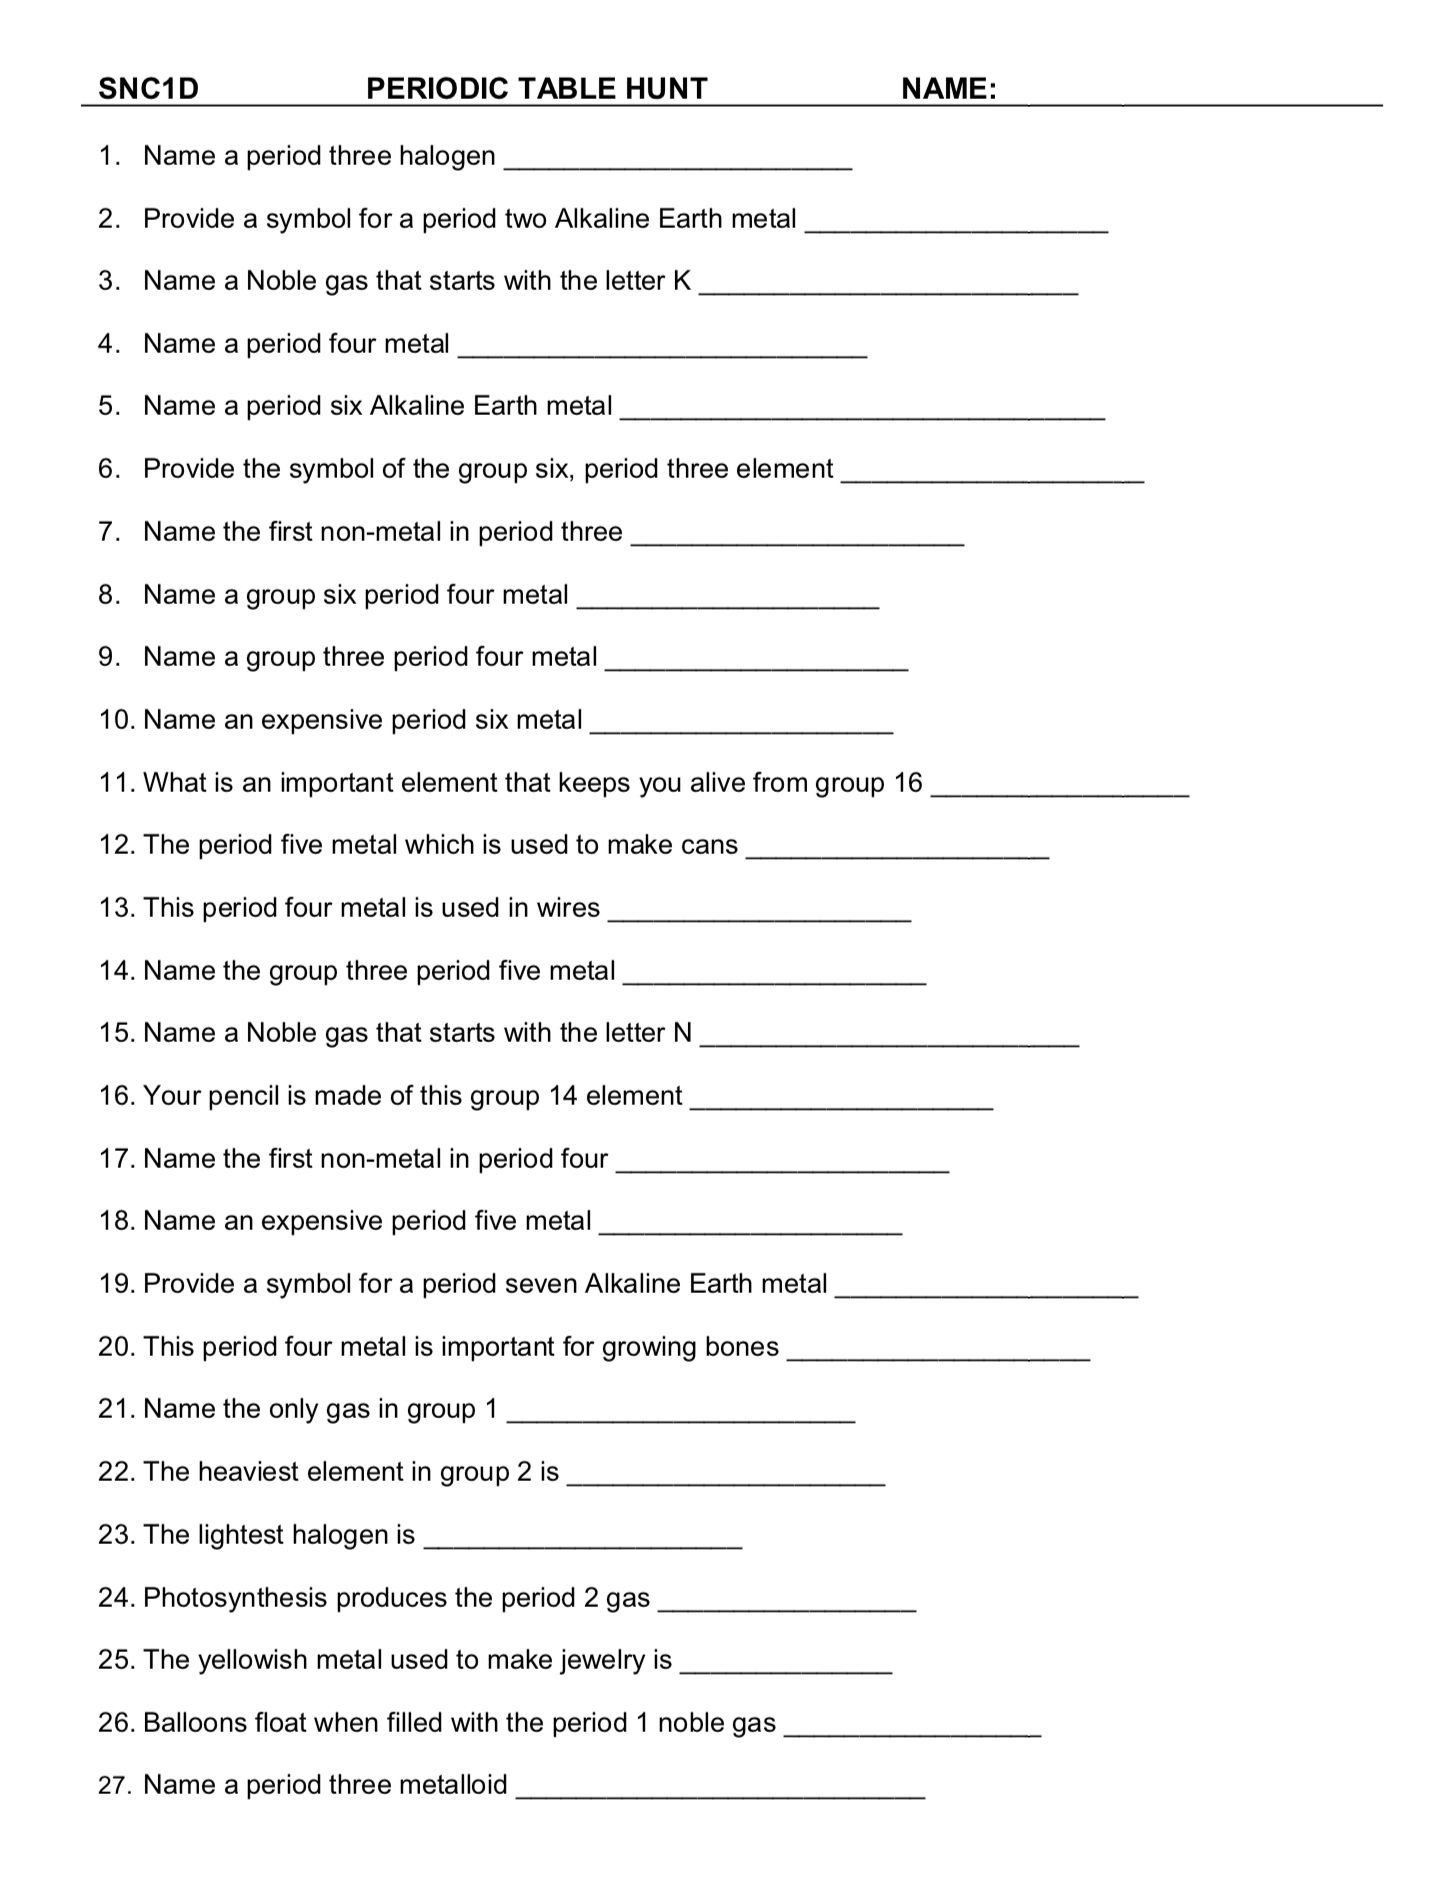 Hunting the Elements Worksheet Answers Pin On Printable Blank Worksheet Template